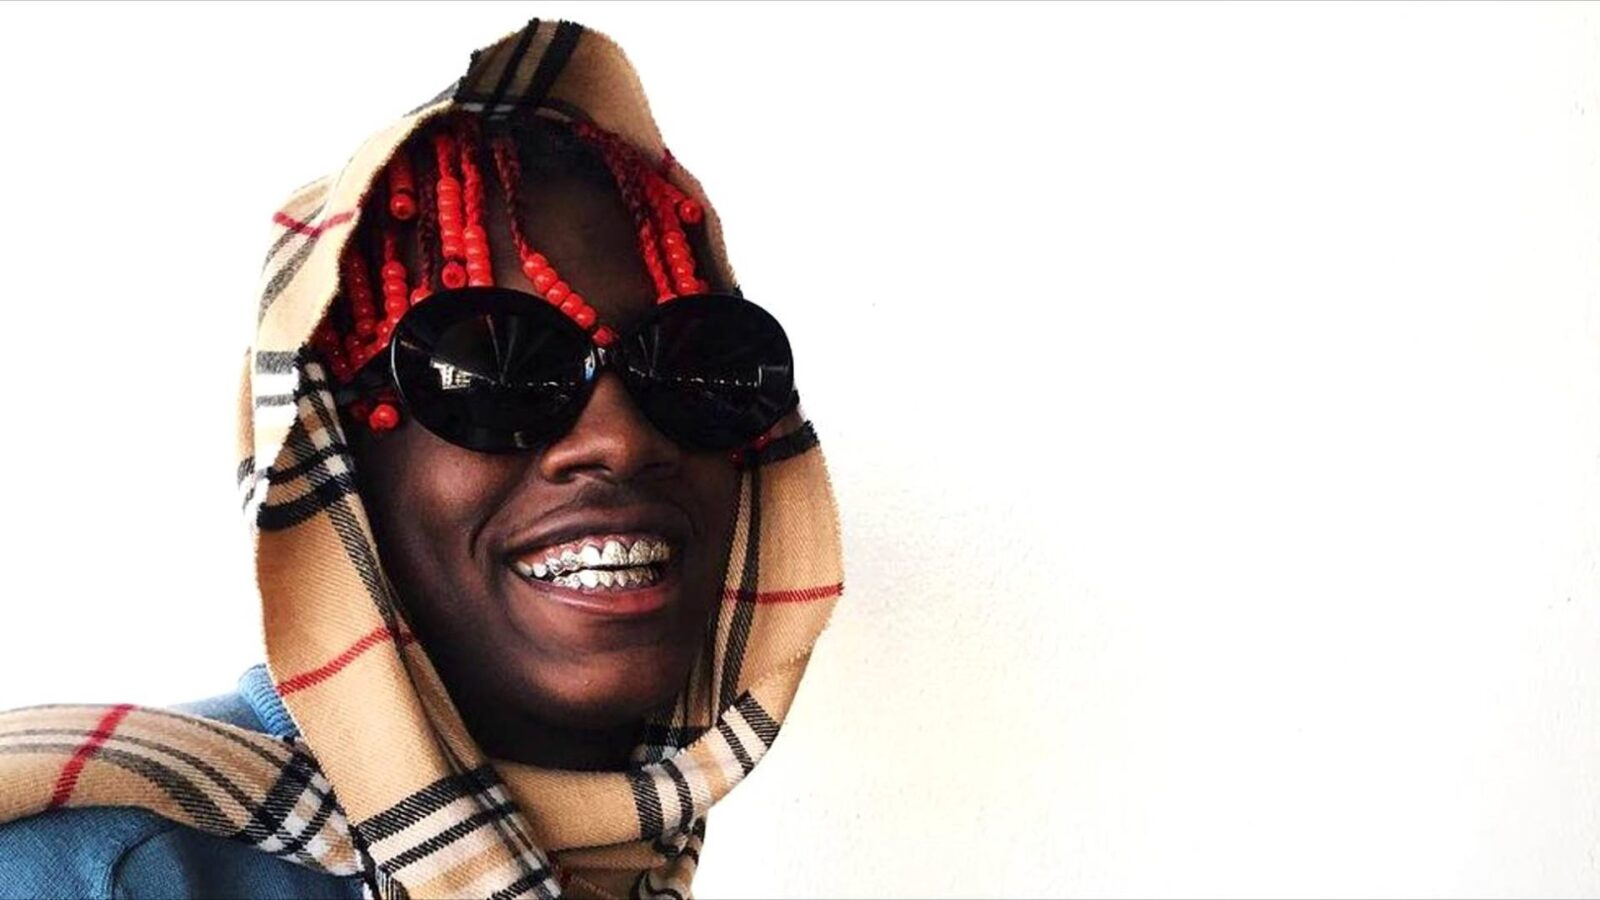 Lil Yachty Is The Epitome Of The Blissful Ignorance Of New Hip Hop